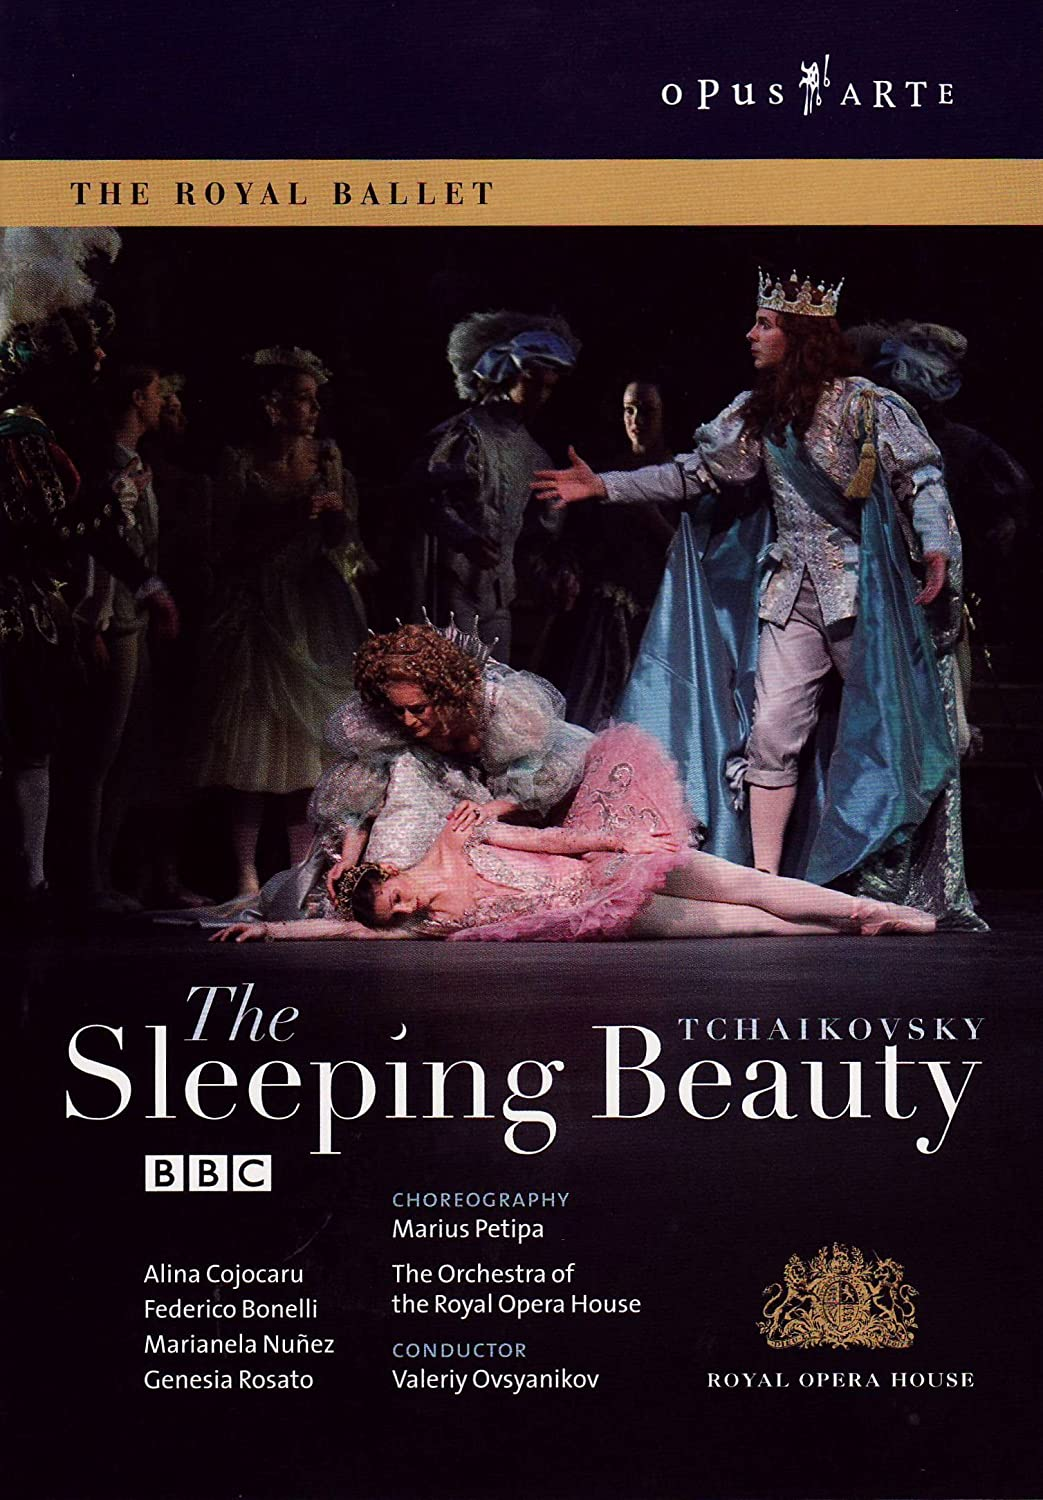 The film The House of Sleeping Beauties: actors and roles